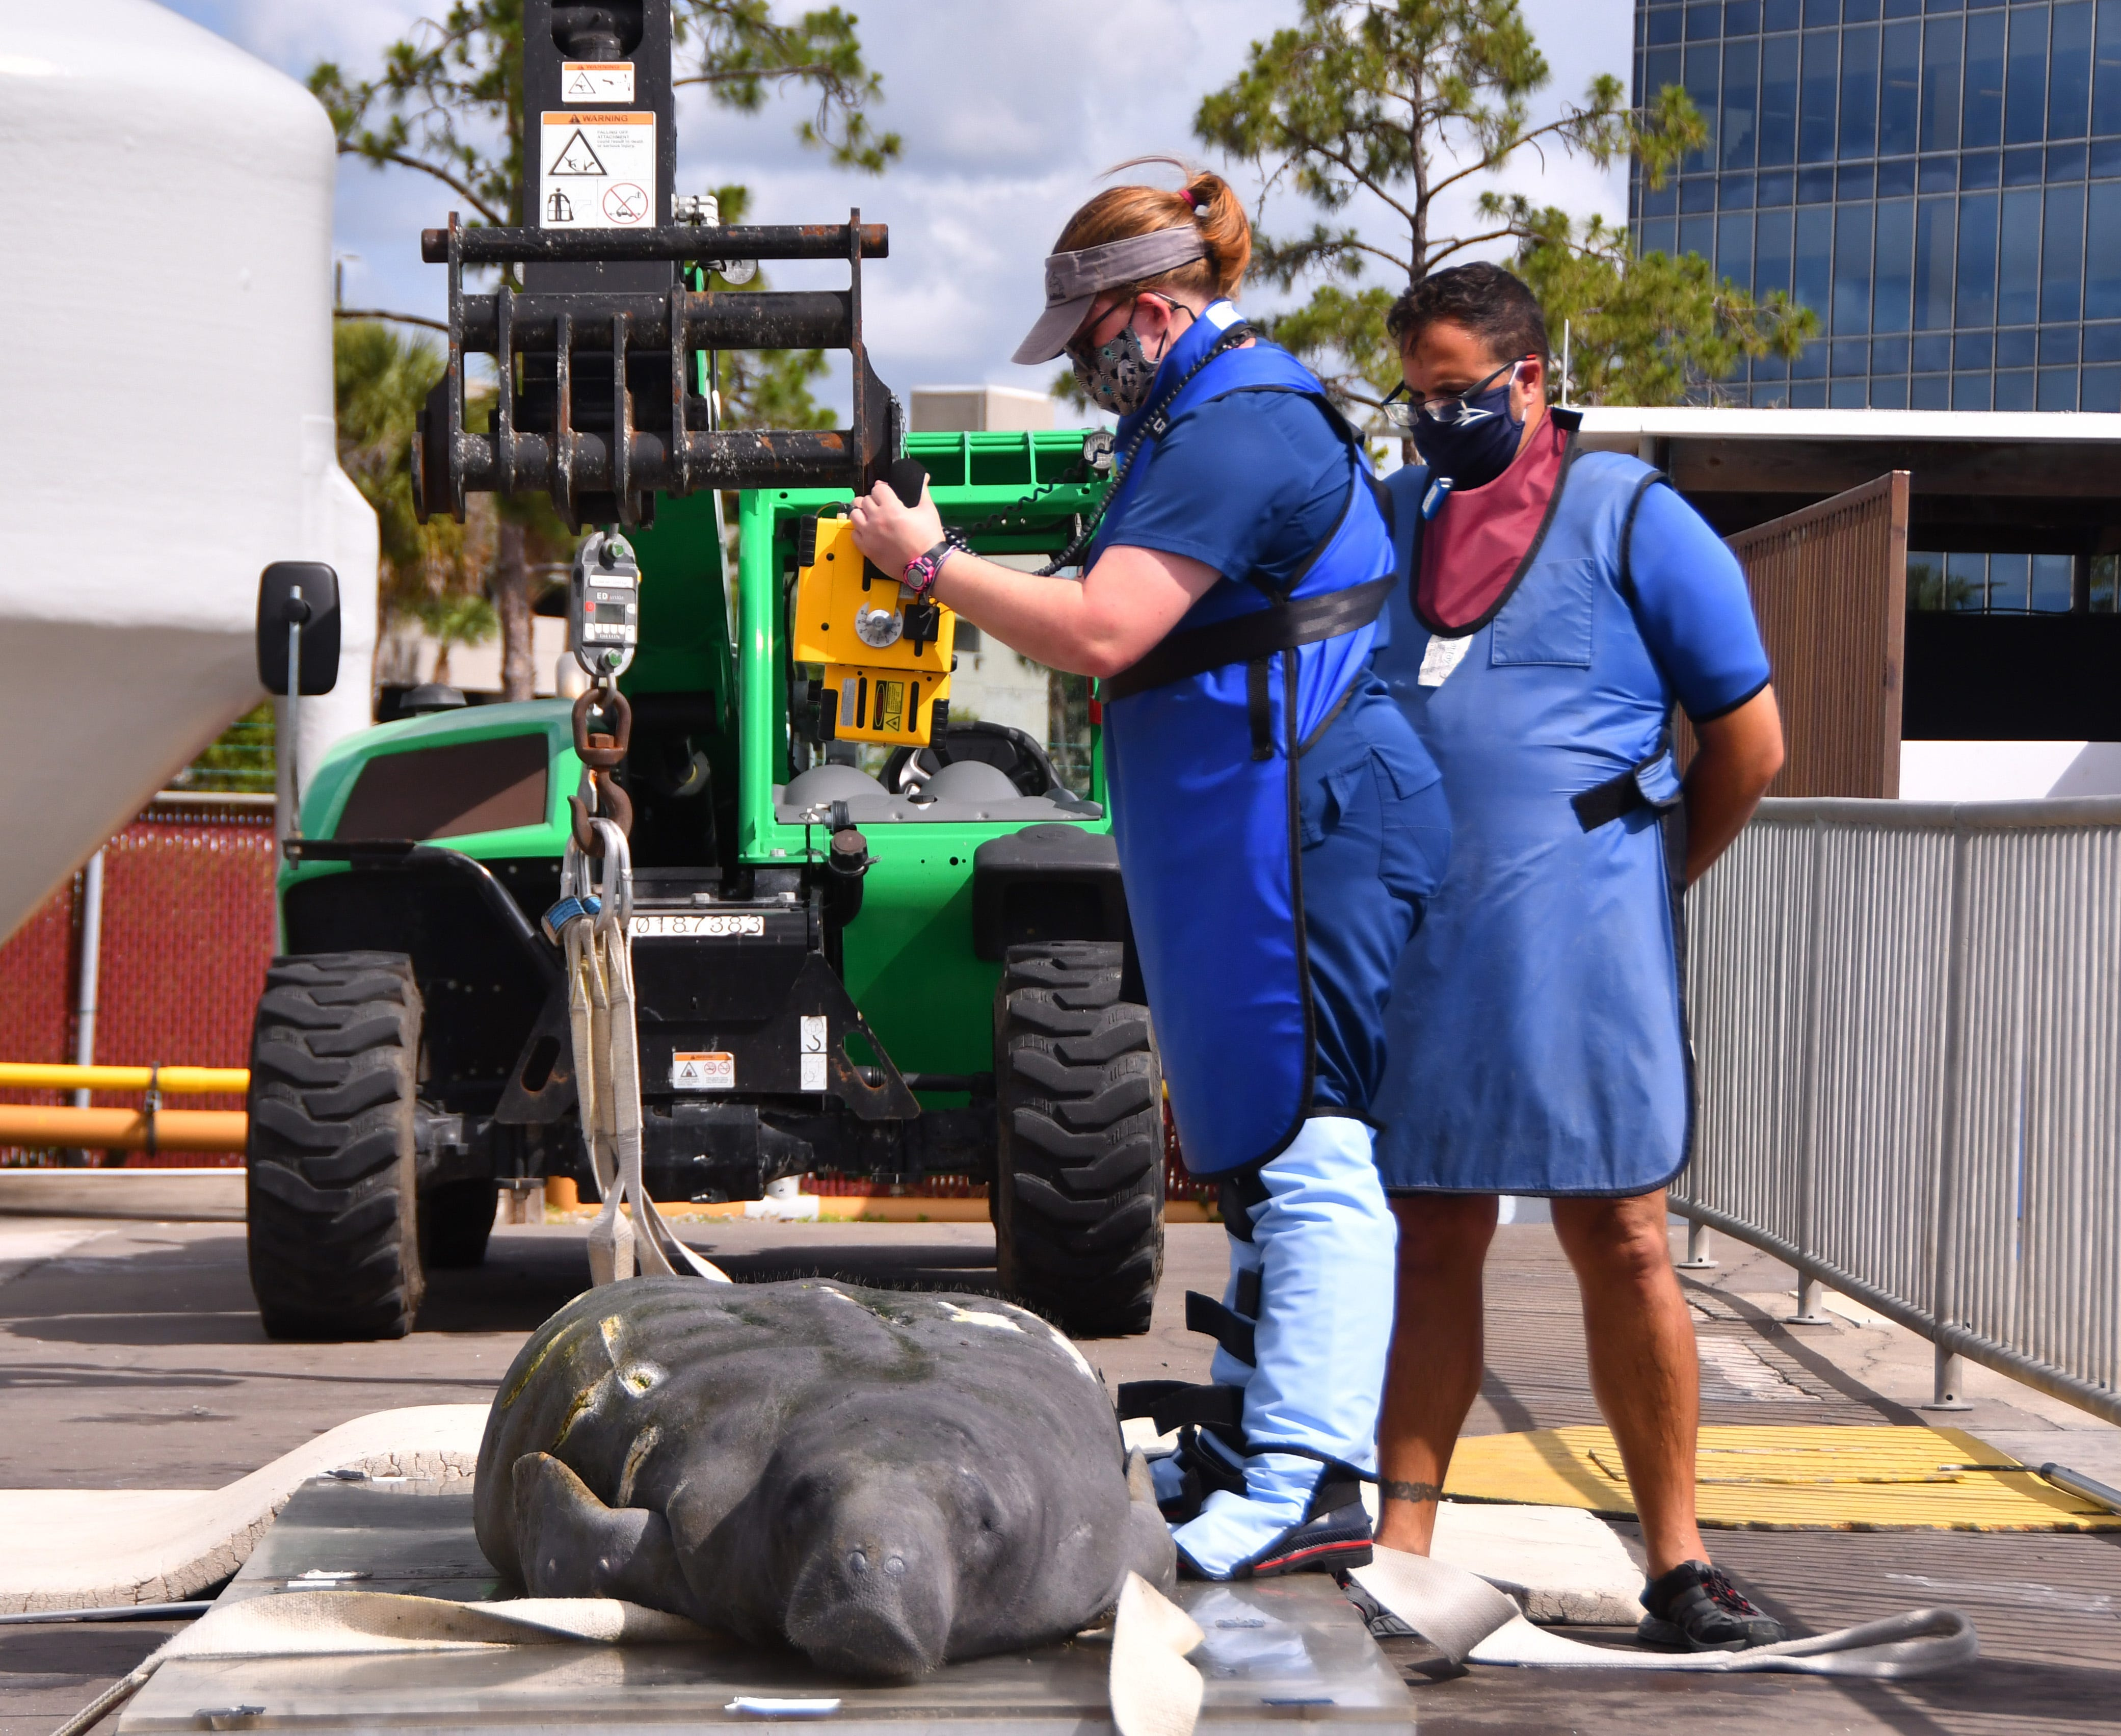 Certified vet technician Stephanie Smith takes an X-ray of a sick, malnourished manatee with a blockage. The manatee was tube fed barium, then X-rayed.